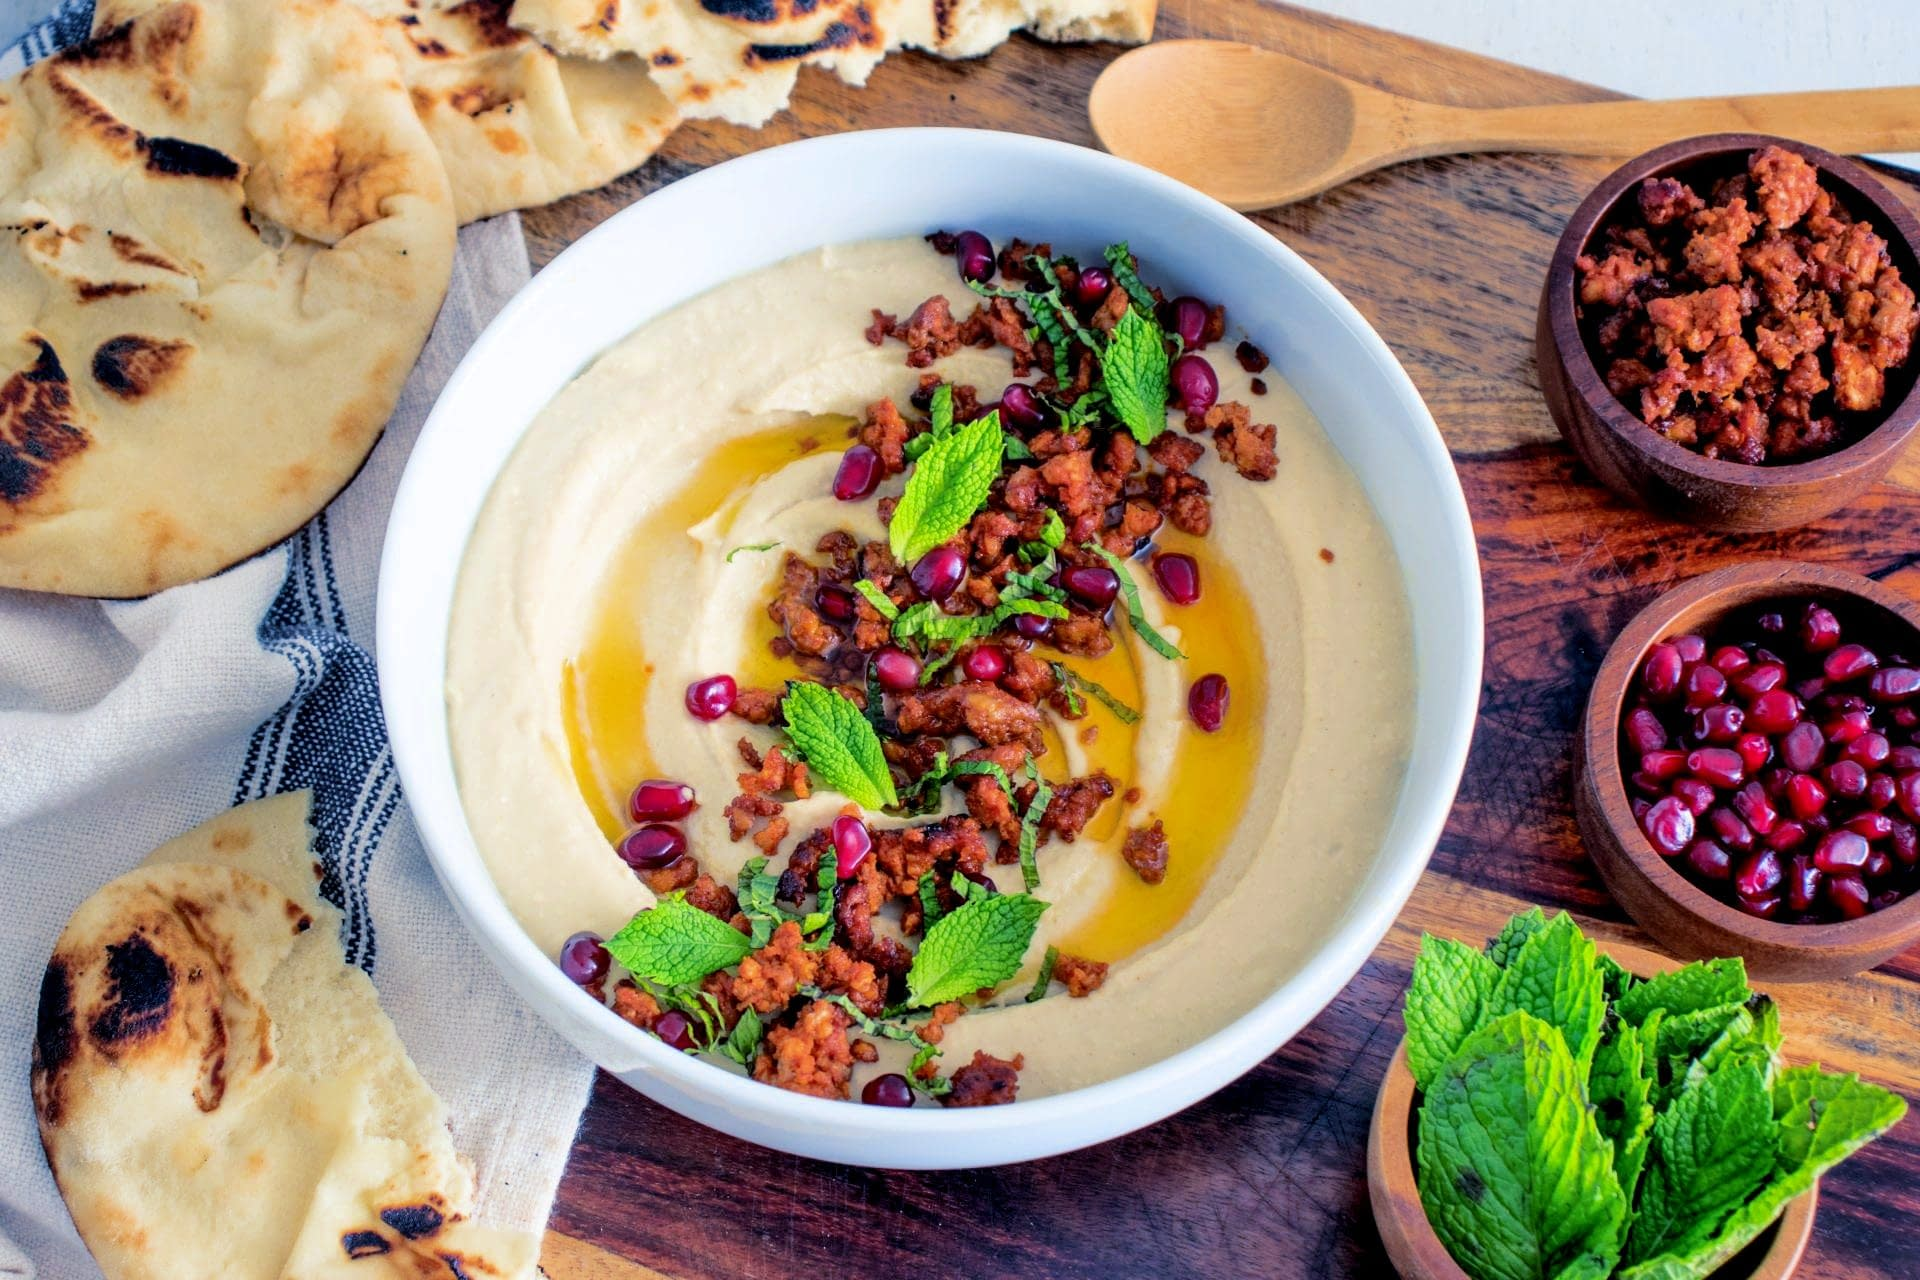 Olive Oil Hummus with Lamb Sausage, Mint & Pomegranate